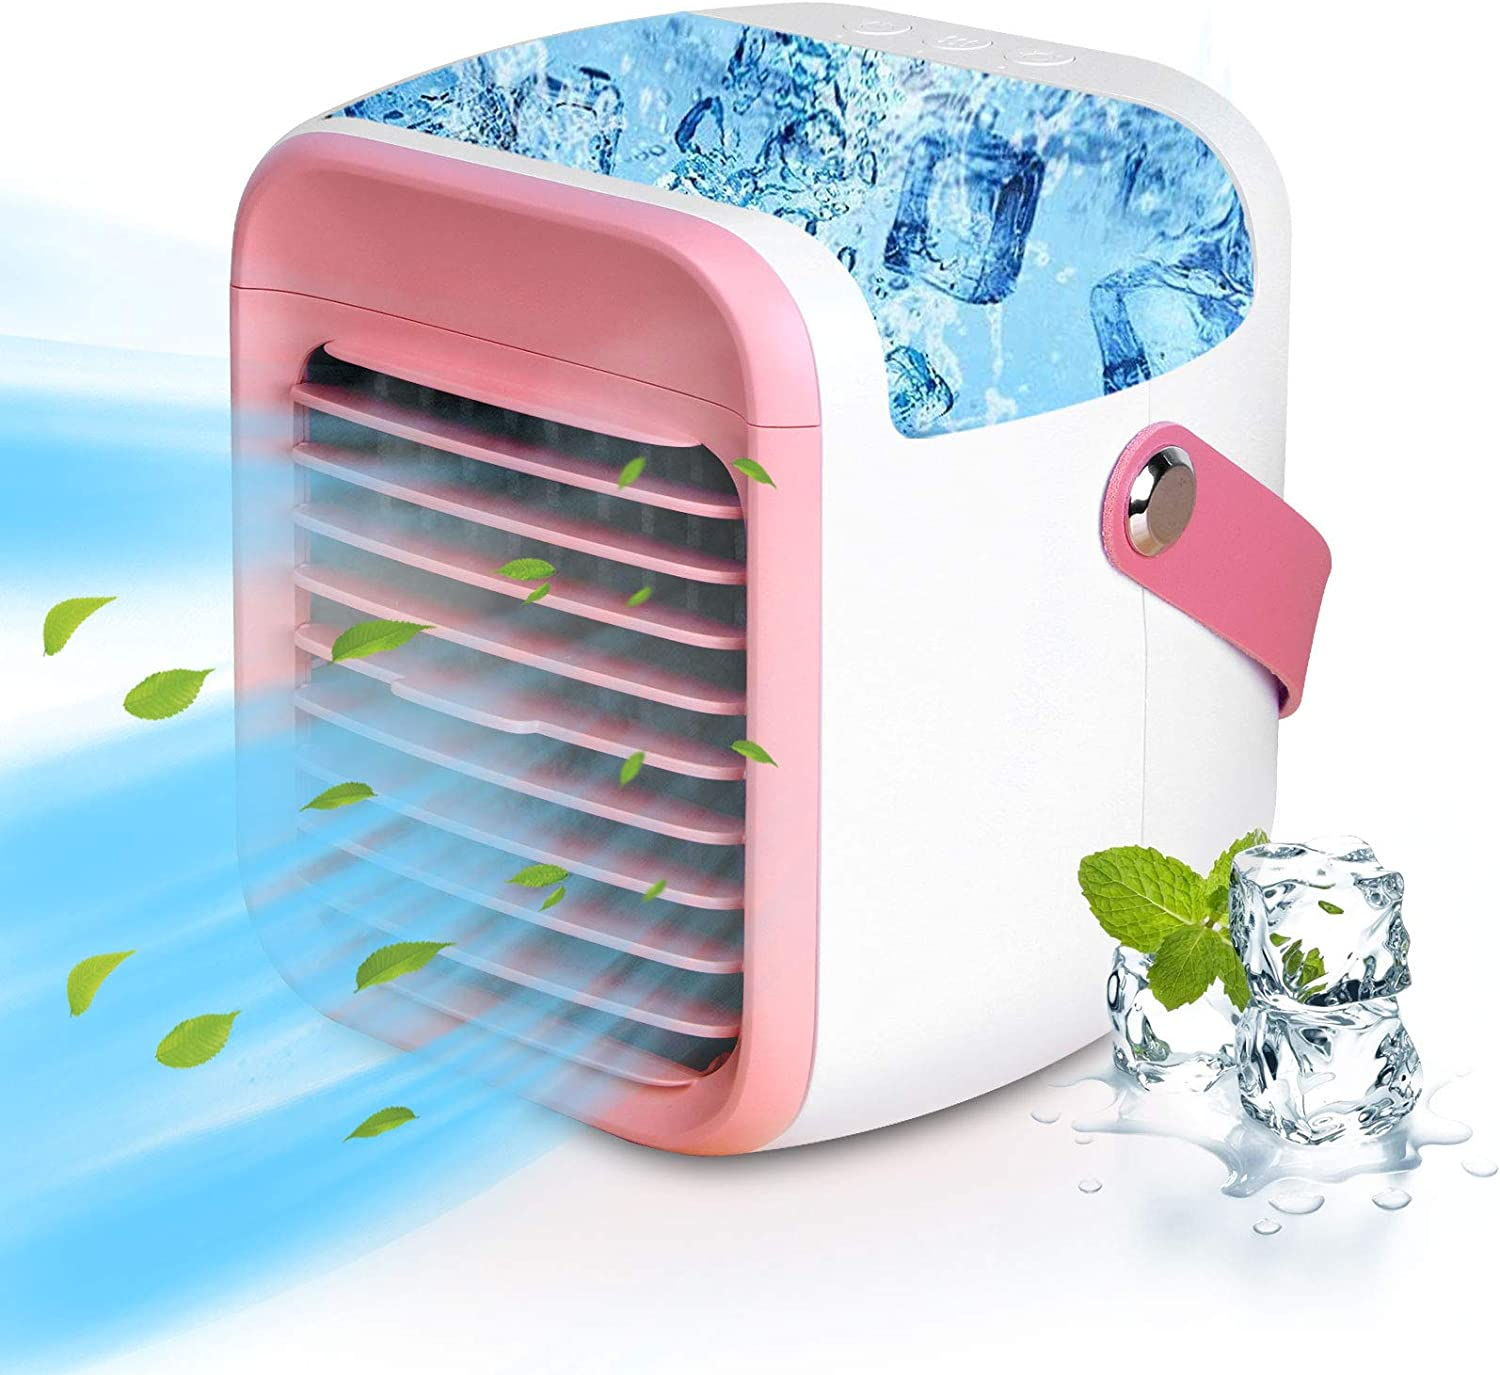 LISOPO Portable Air Conditioner Fan Rechargeable Evaporative Air Cooler with 7 Color Night Light & Humidifier & Filtration Function | Personal Small Air Conditioner Desk Fan for Home Office Bedroom